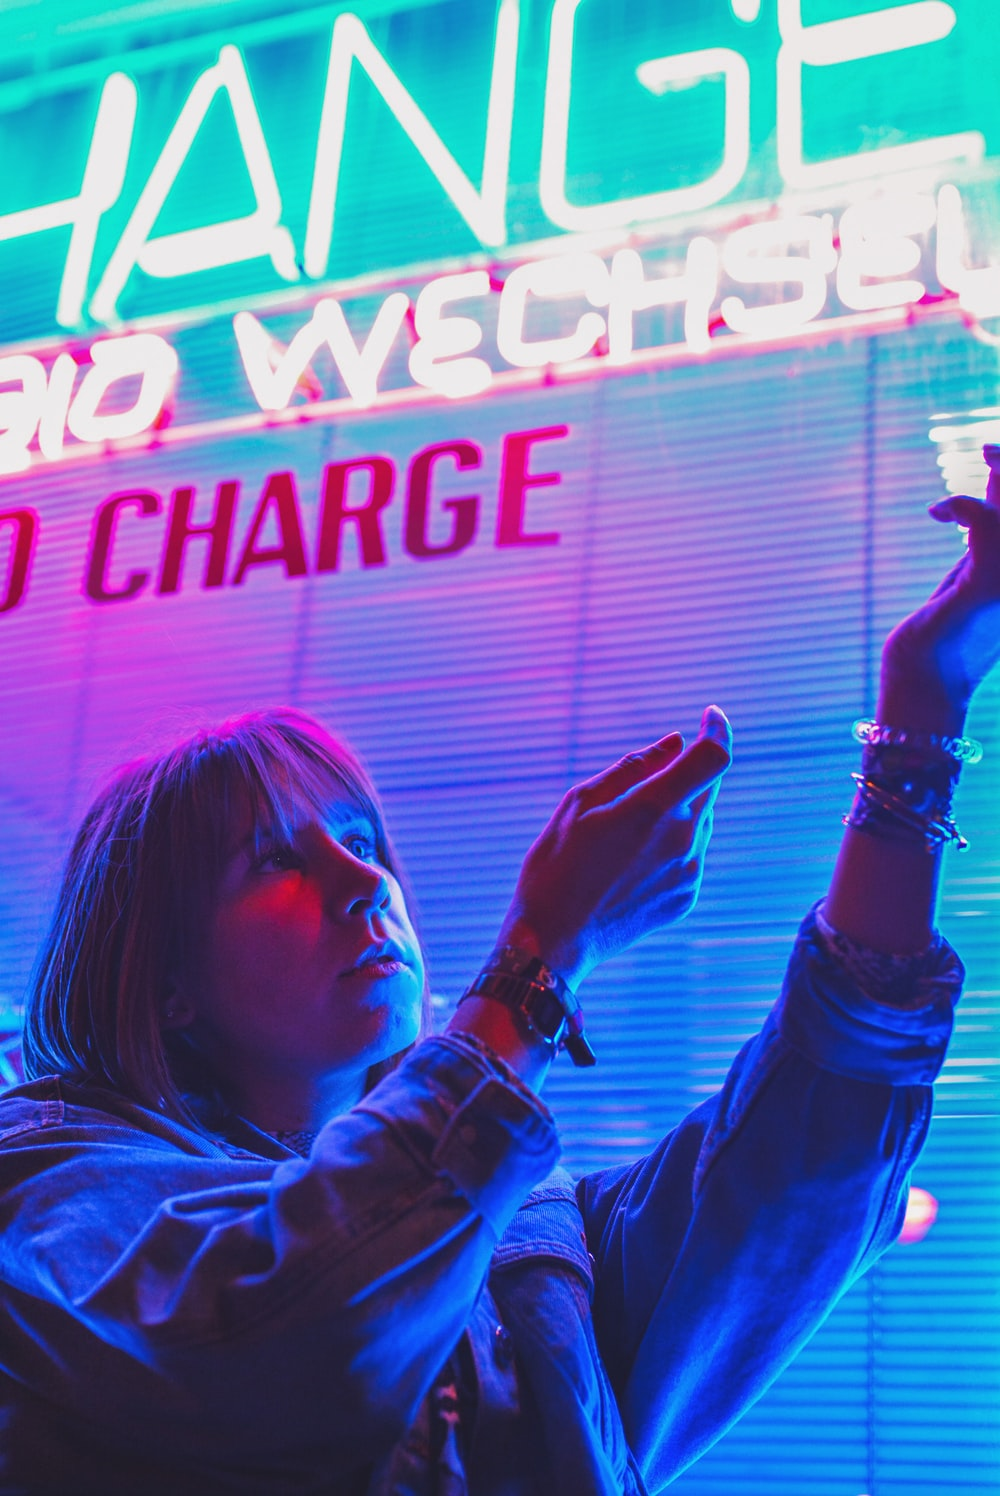 woman about to touch white and blue neon signage